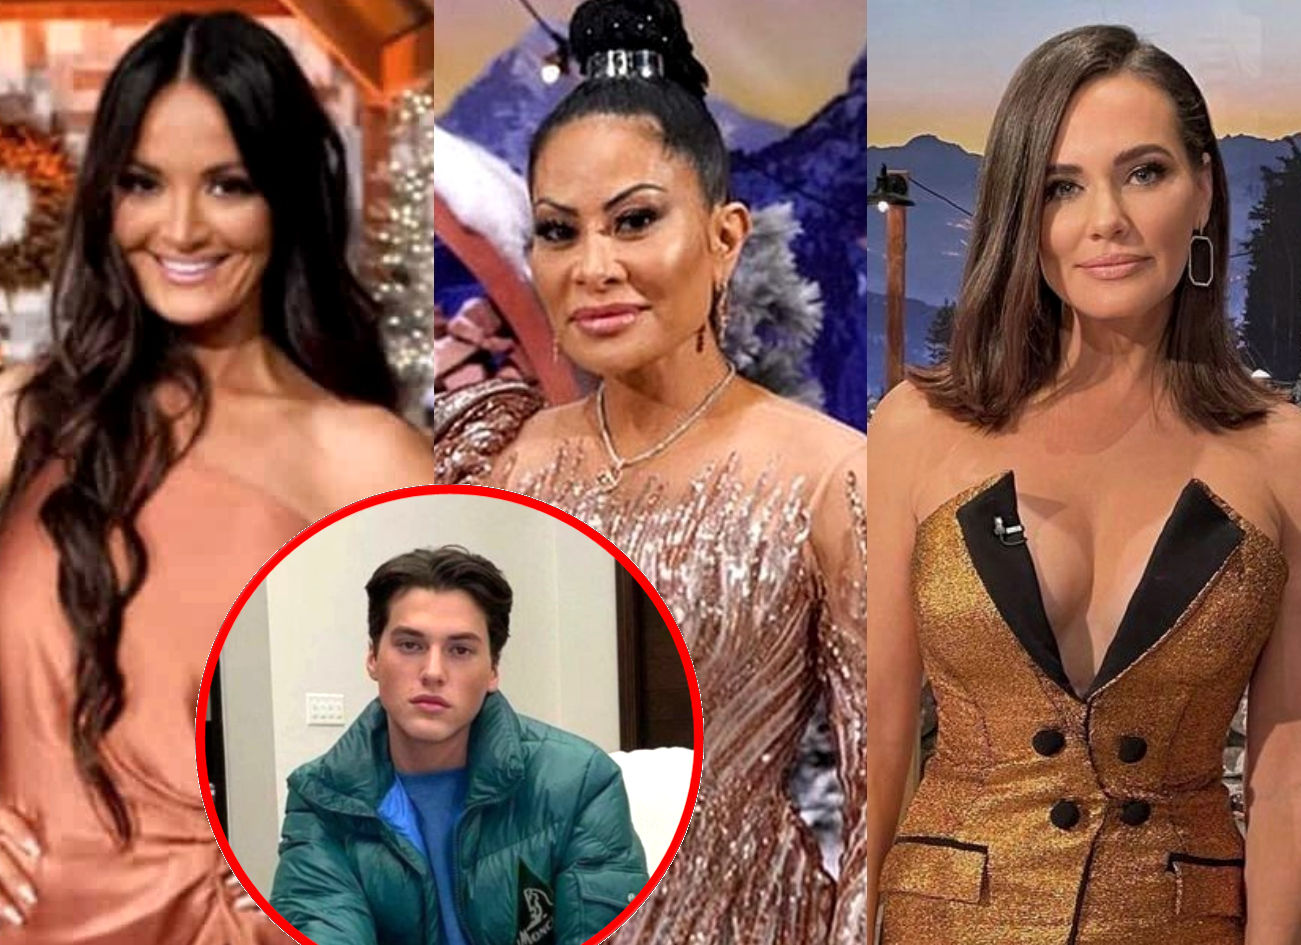 RHOSLC's Lisa Barlow Insists She Confronted Jen Shah Over Mean Tweets as Meredith Marks Slams Jen for 'Liking' Derogatory Posts About Brooks